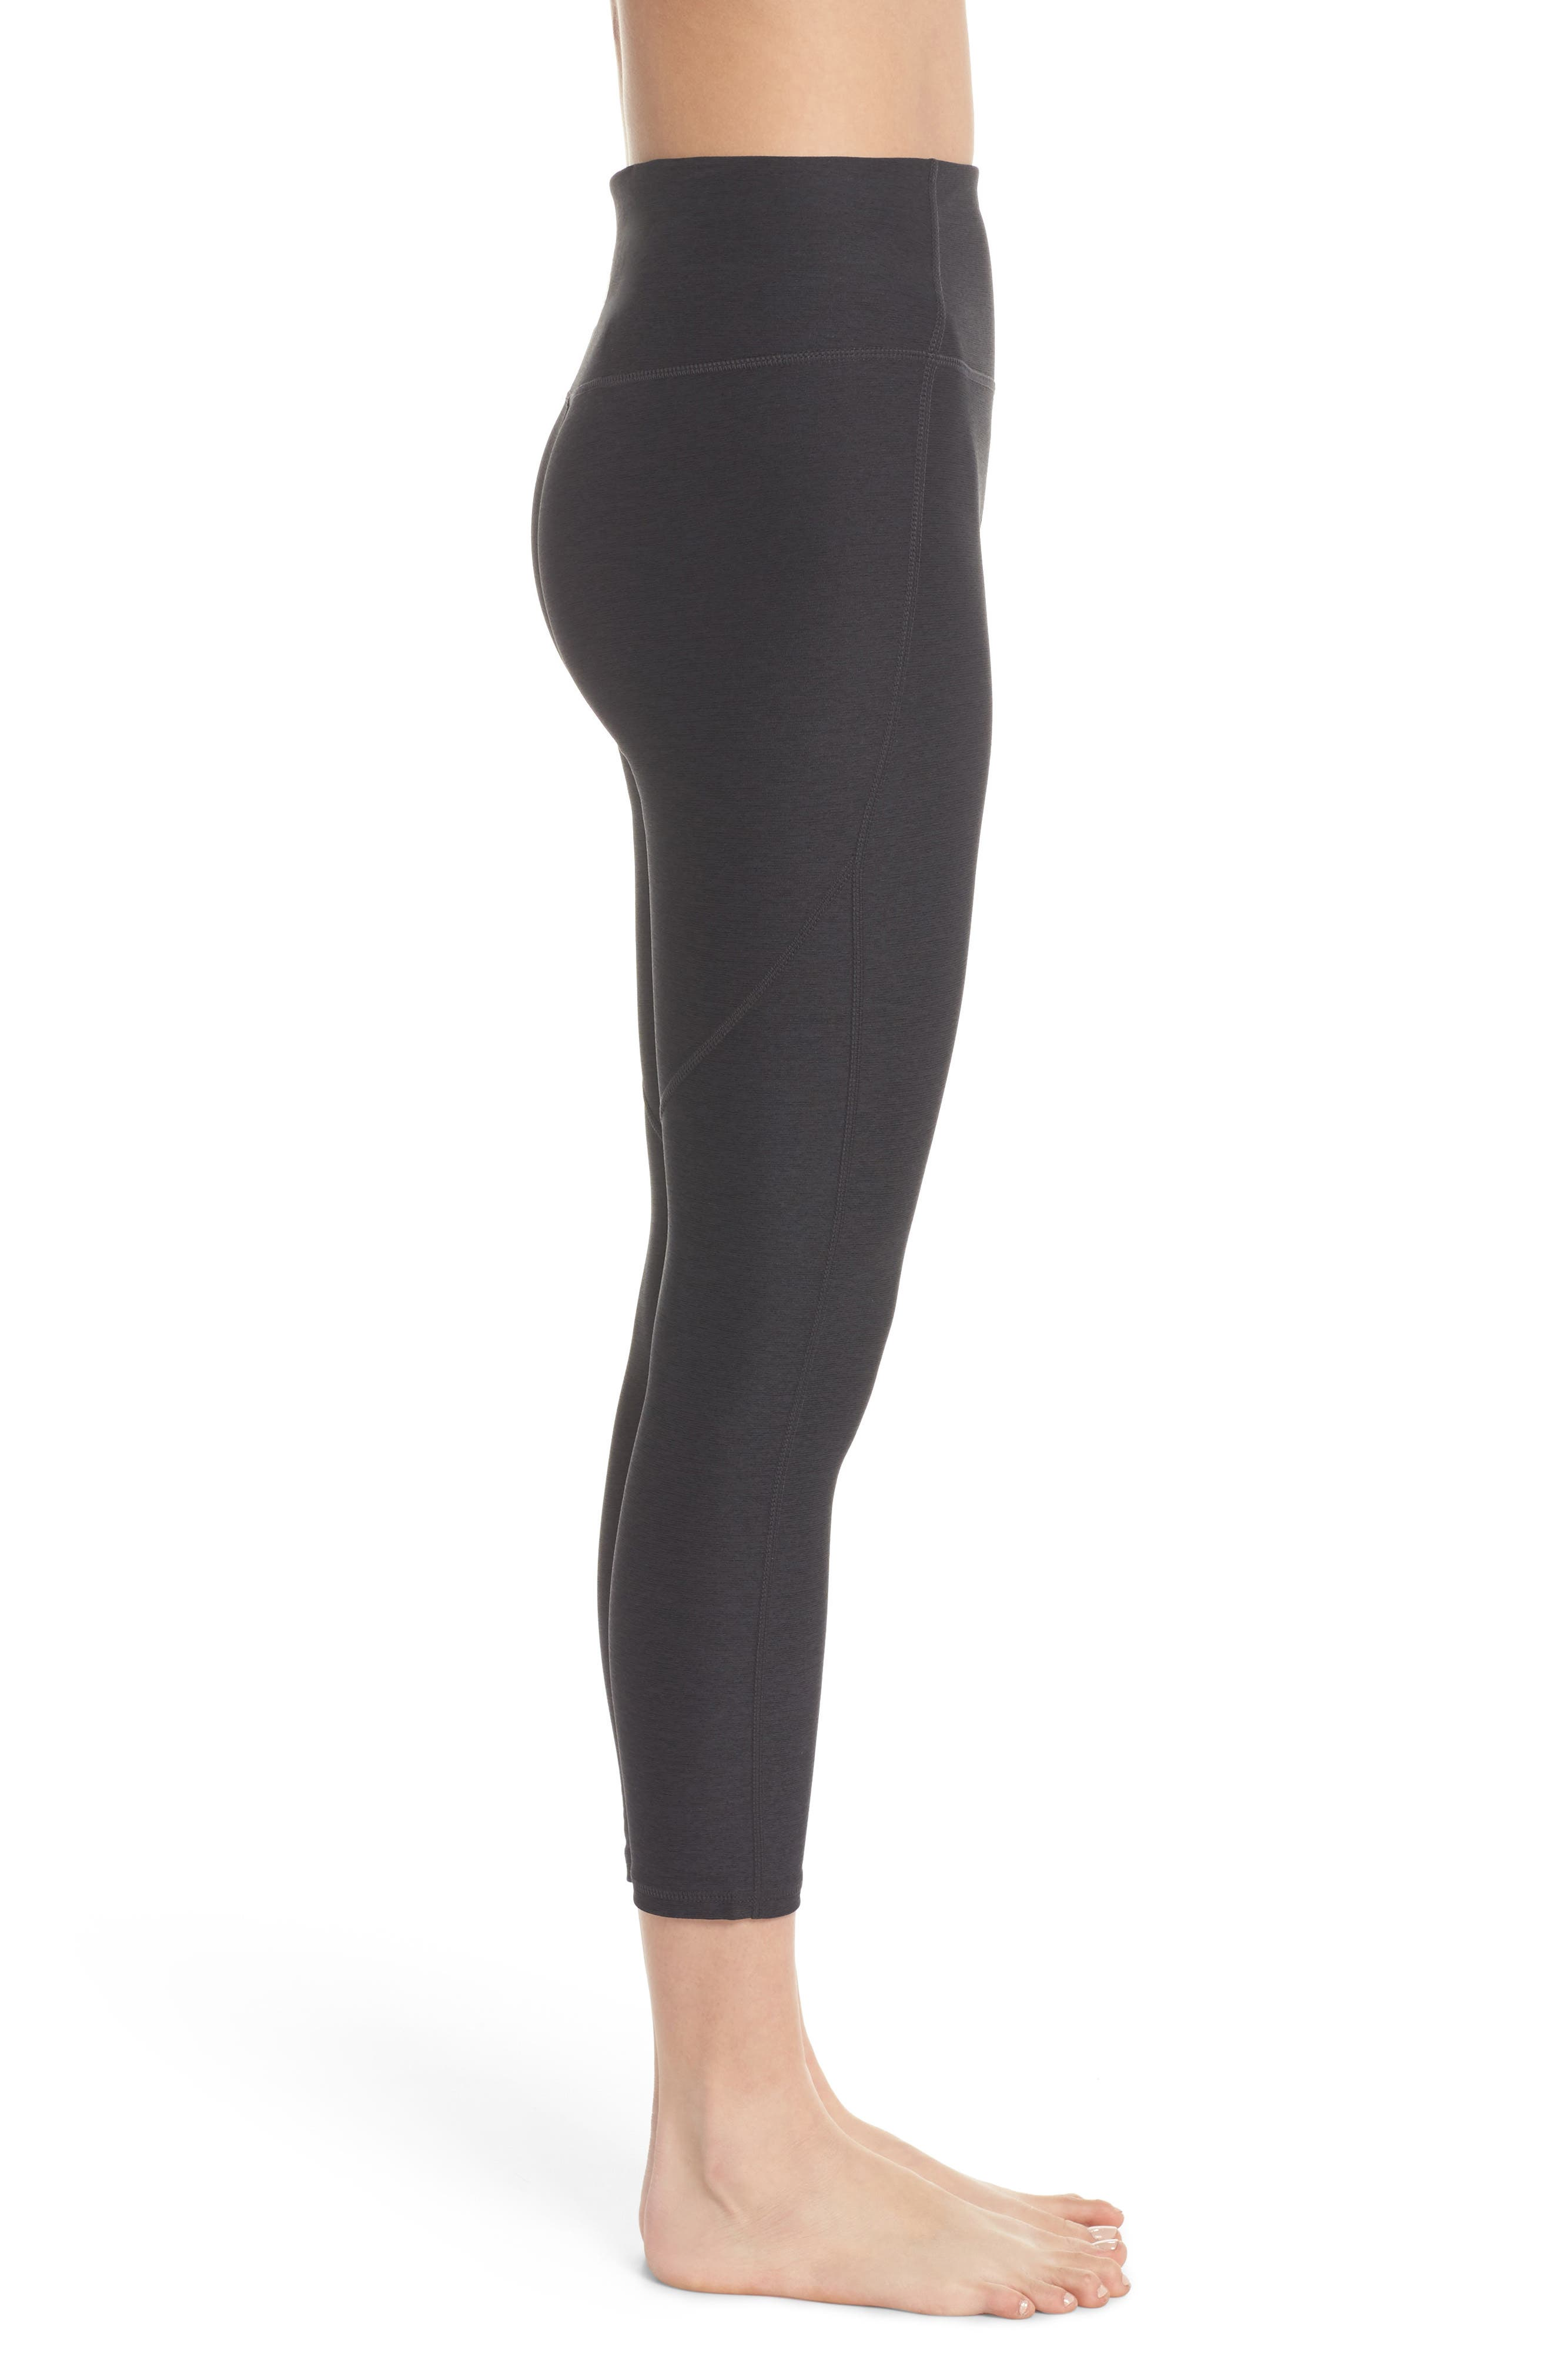 VARLEY,                             Everett High Waist Crop Tights,                             Alternate thumbnail 3, color,                             020